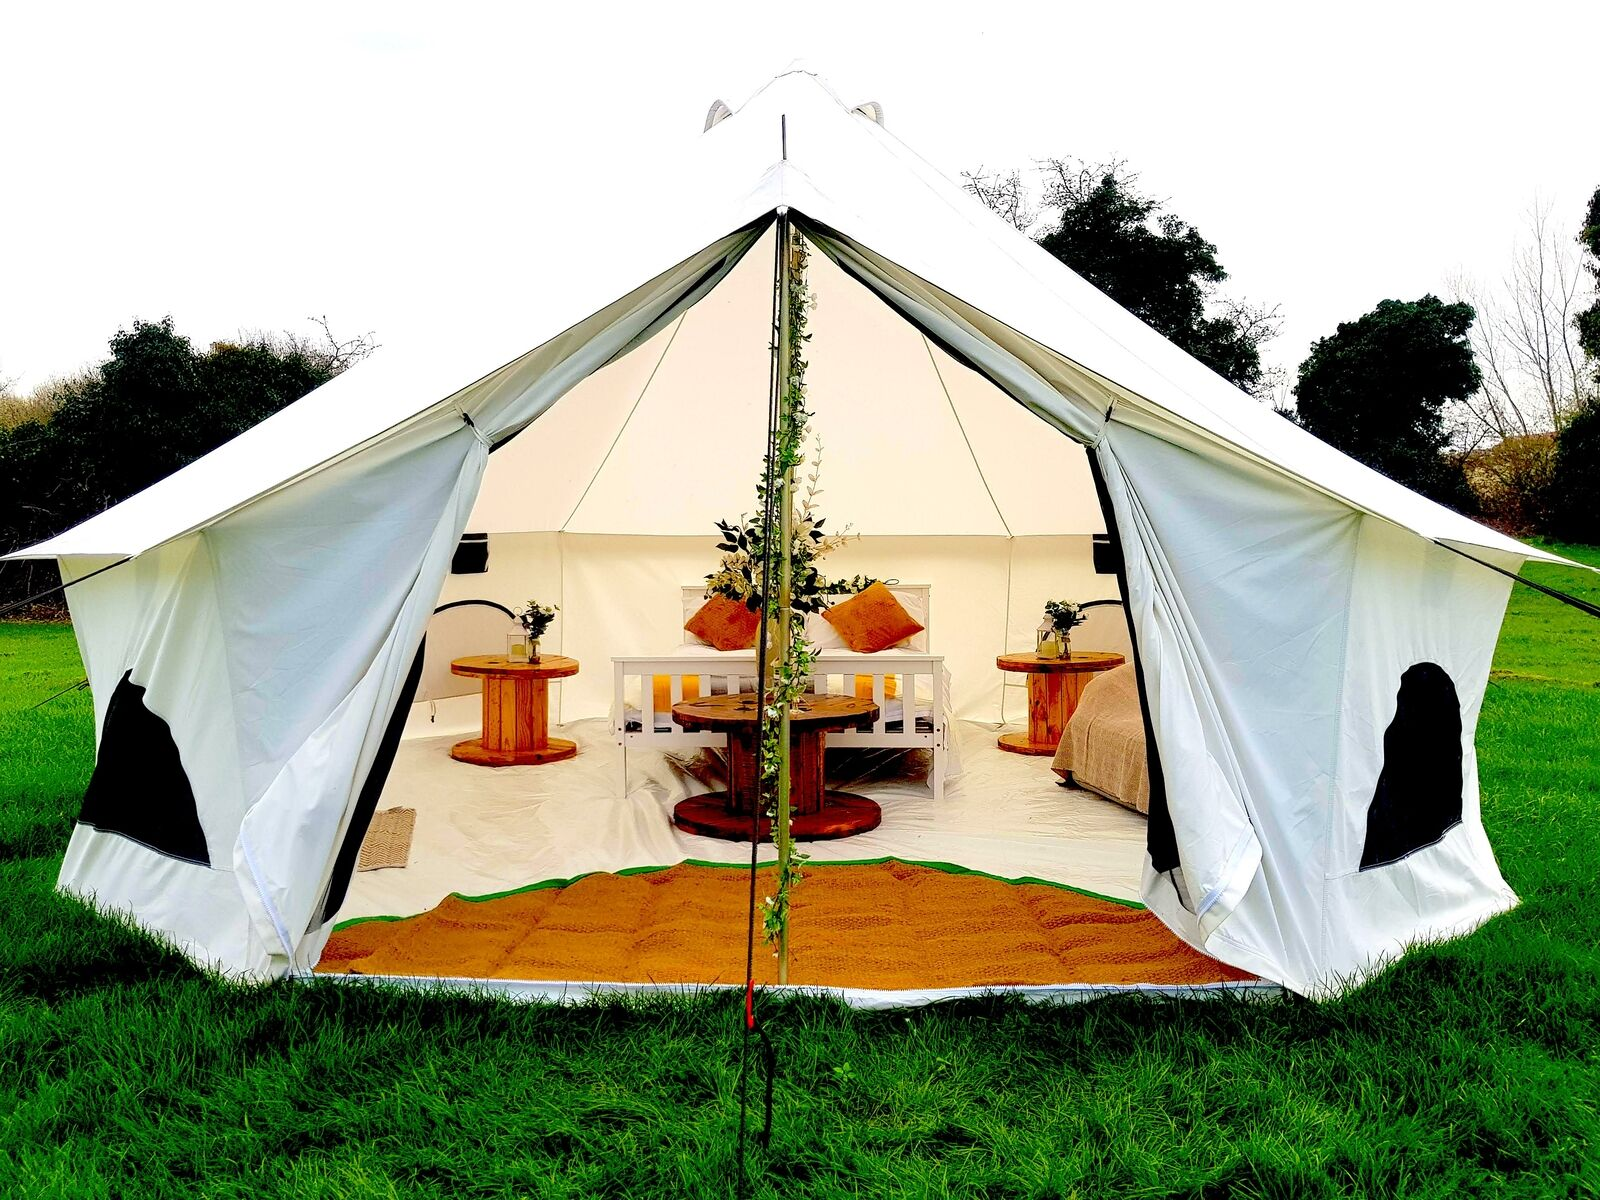 NEW XL Fire Retardant Cotton Canvas Bell Tent + Stove Hole By Bell Tent Village